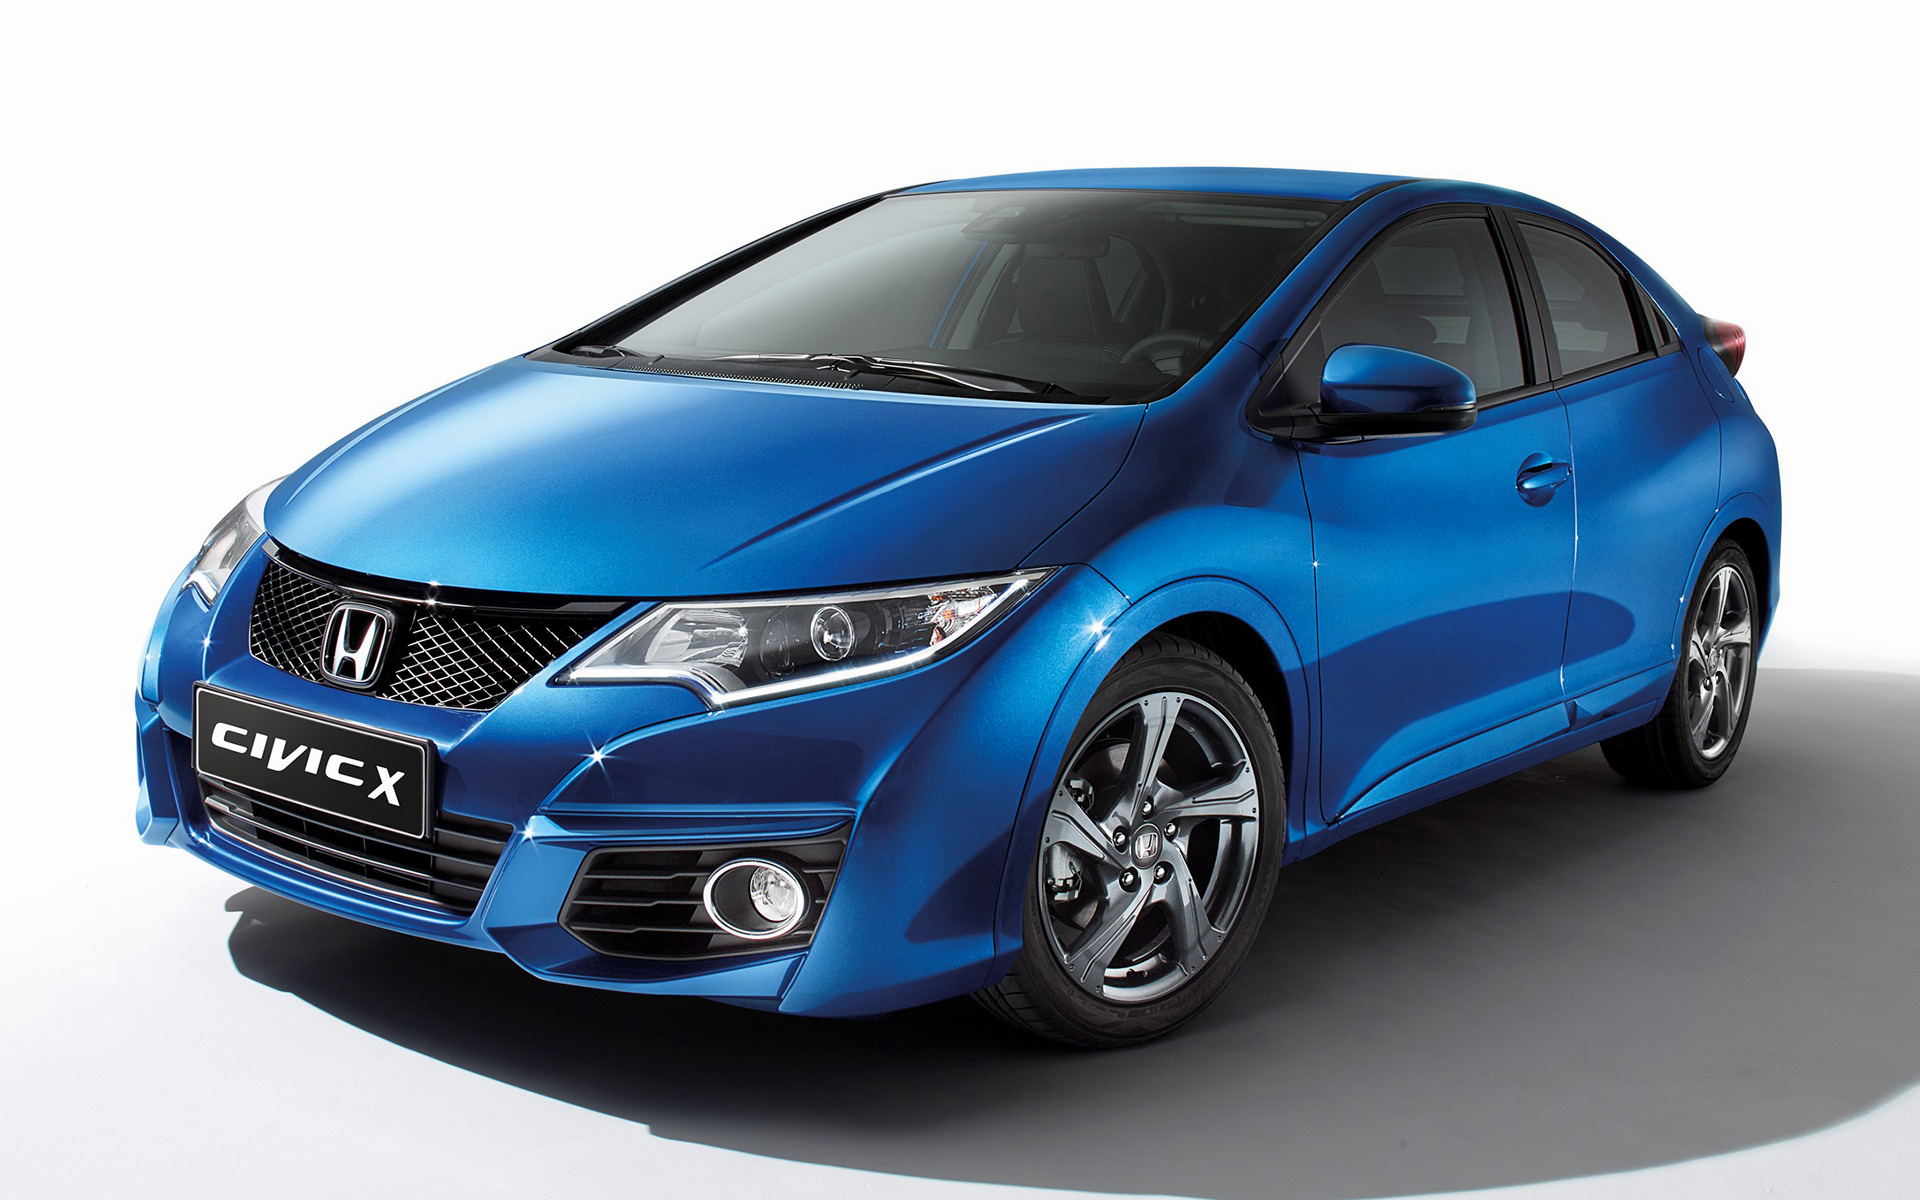 Honda Civic X Edition (2016) Wallpapers and HD Images ...